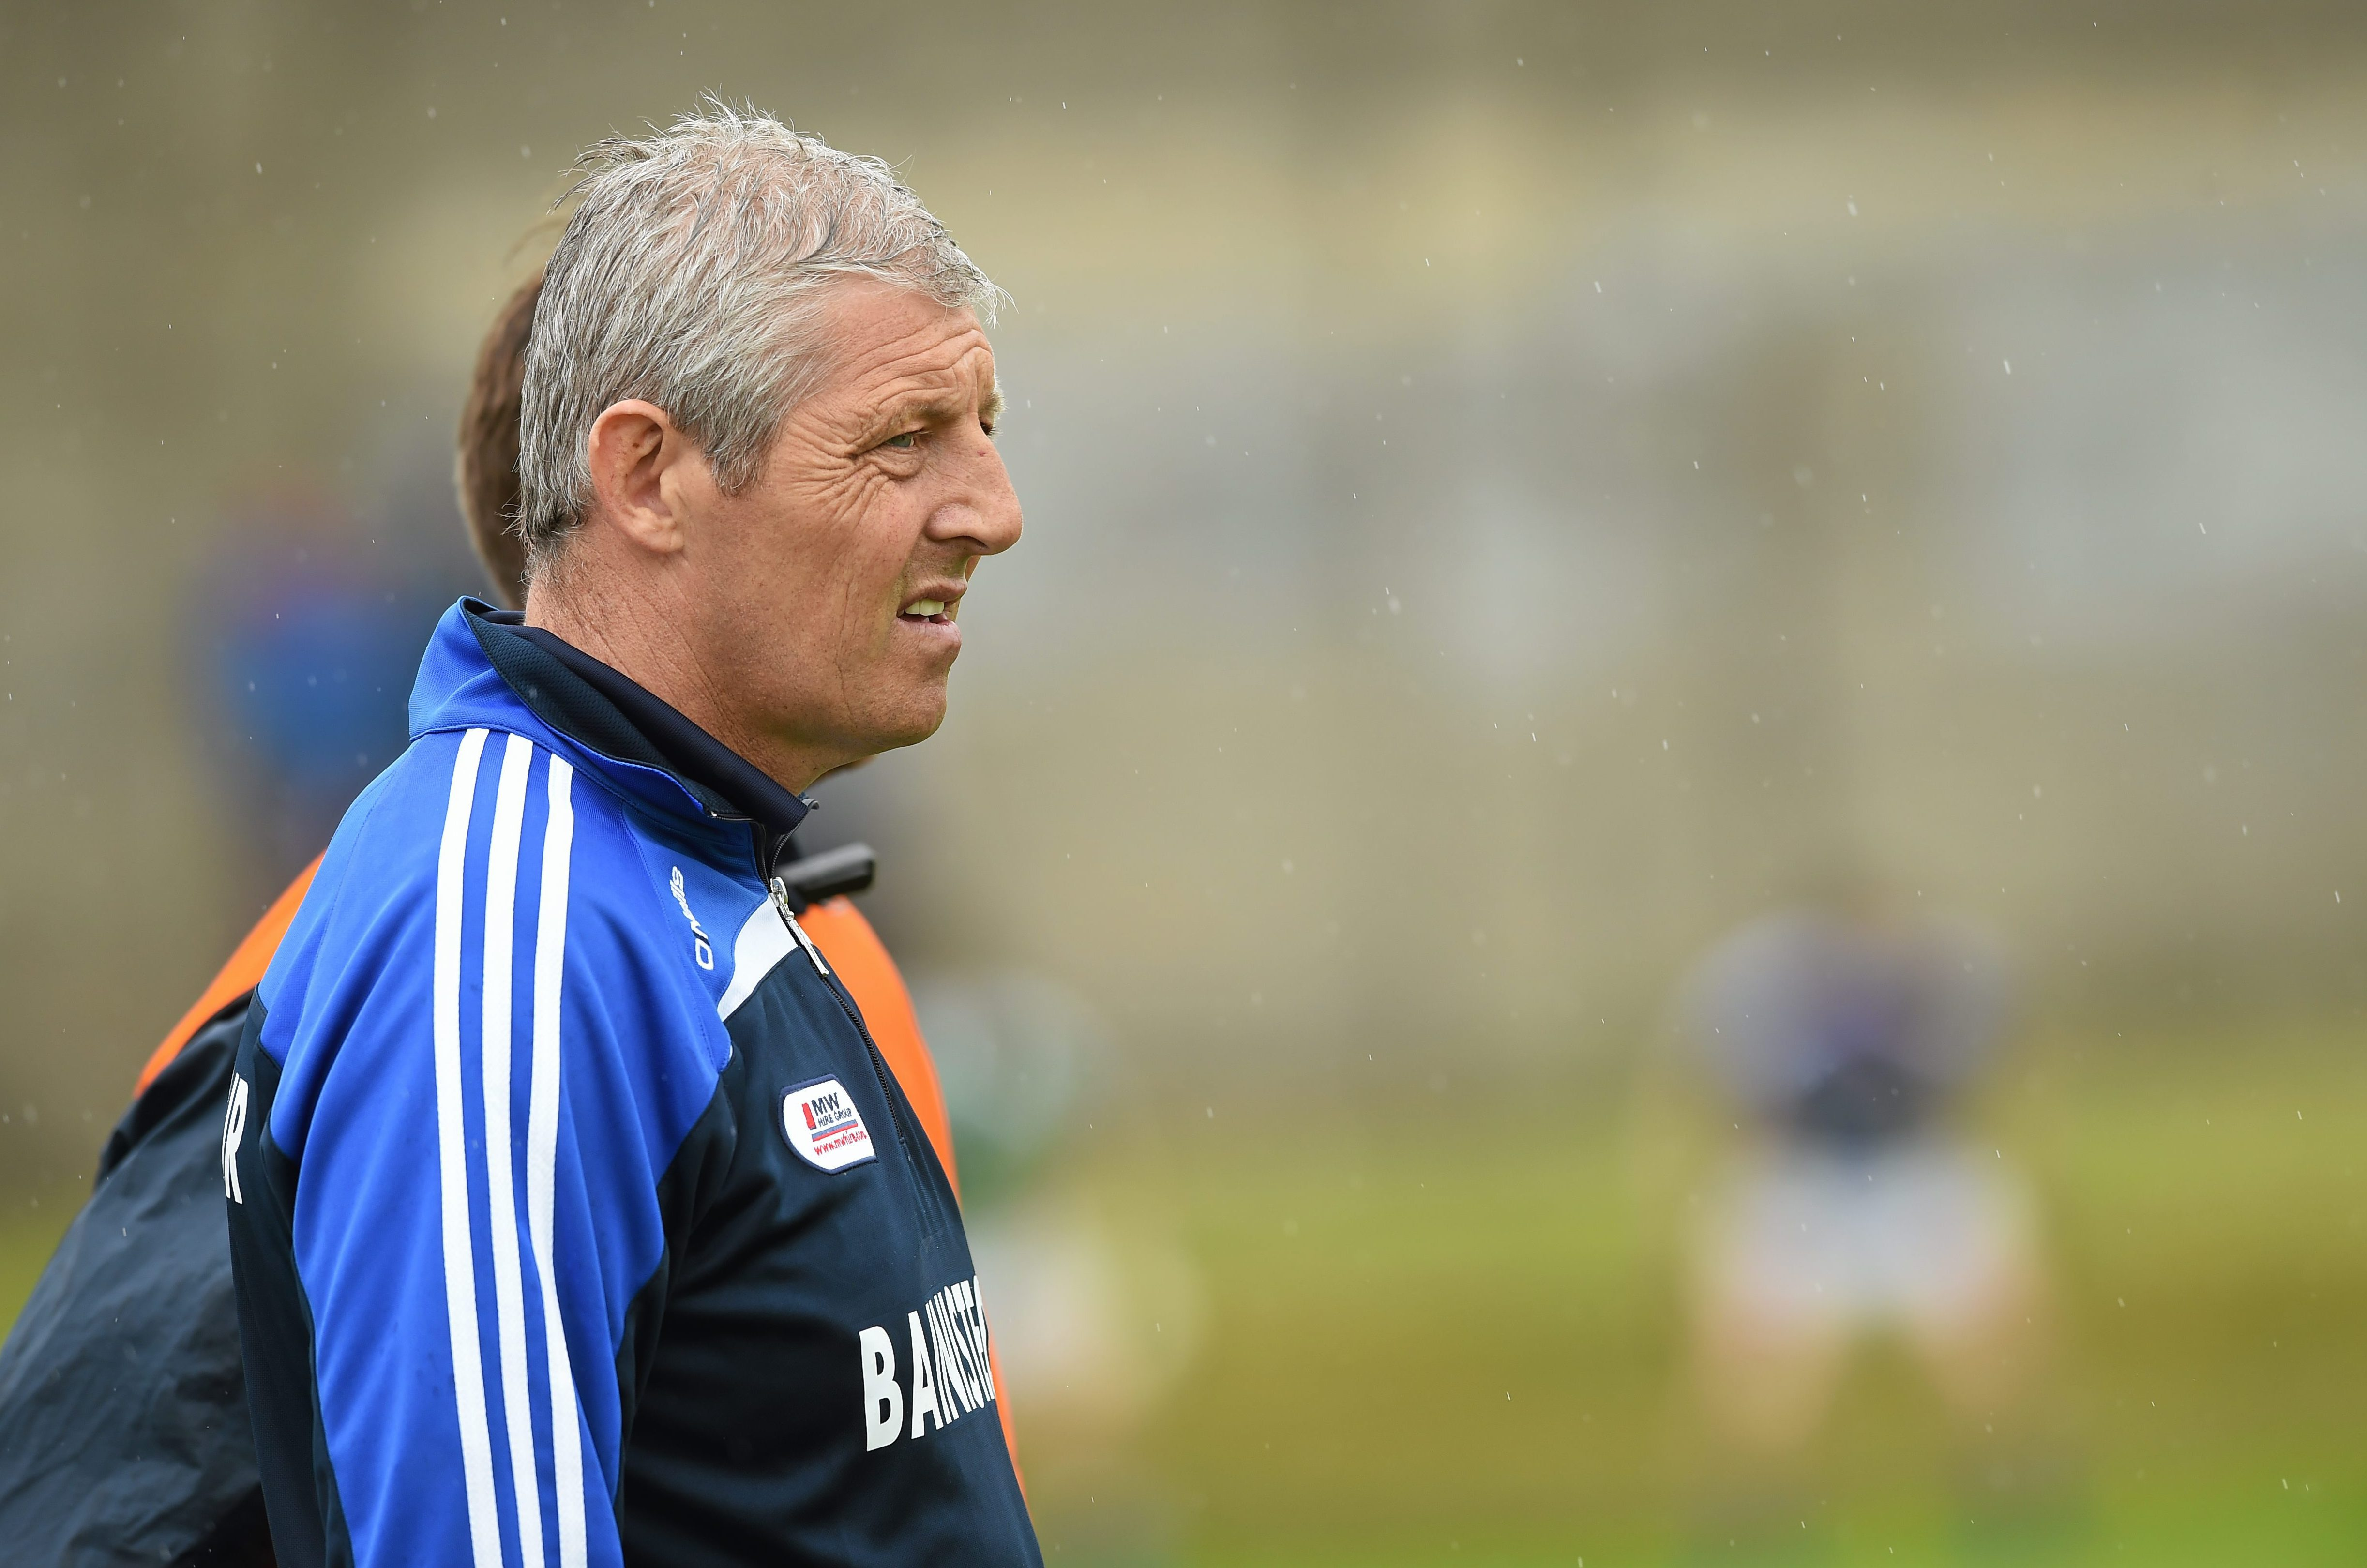 Laois manager Tomas O'Flaharta against Wicklow in 2014 in Aughrim